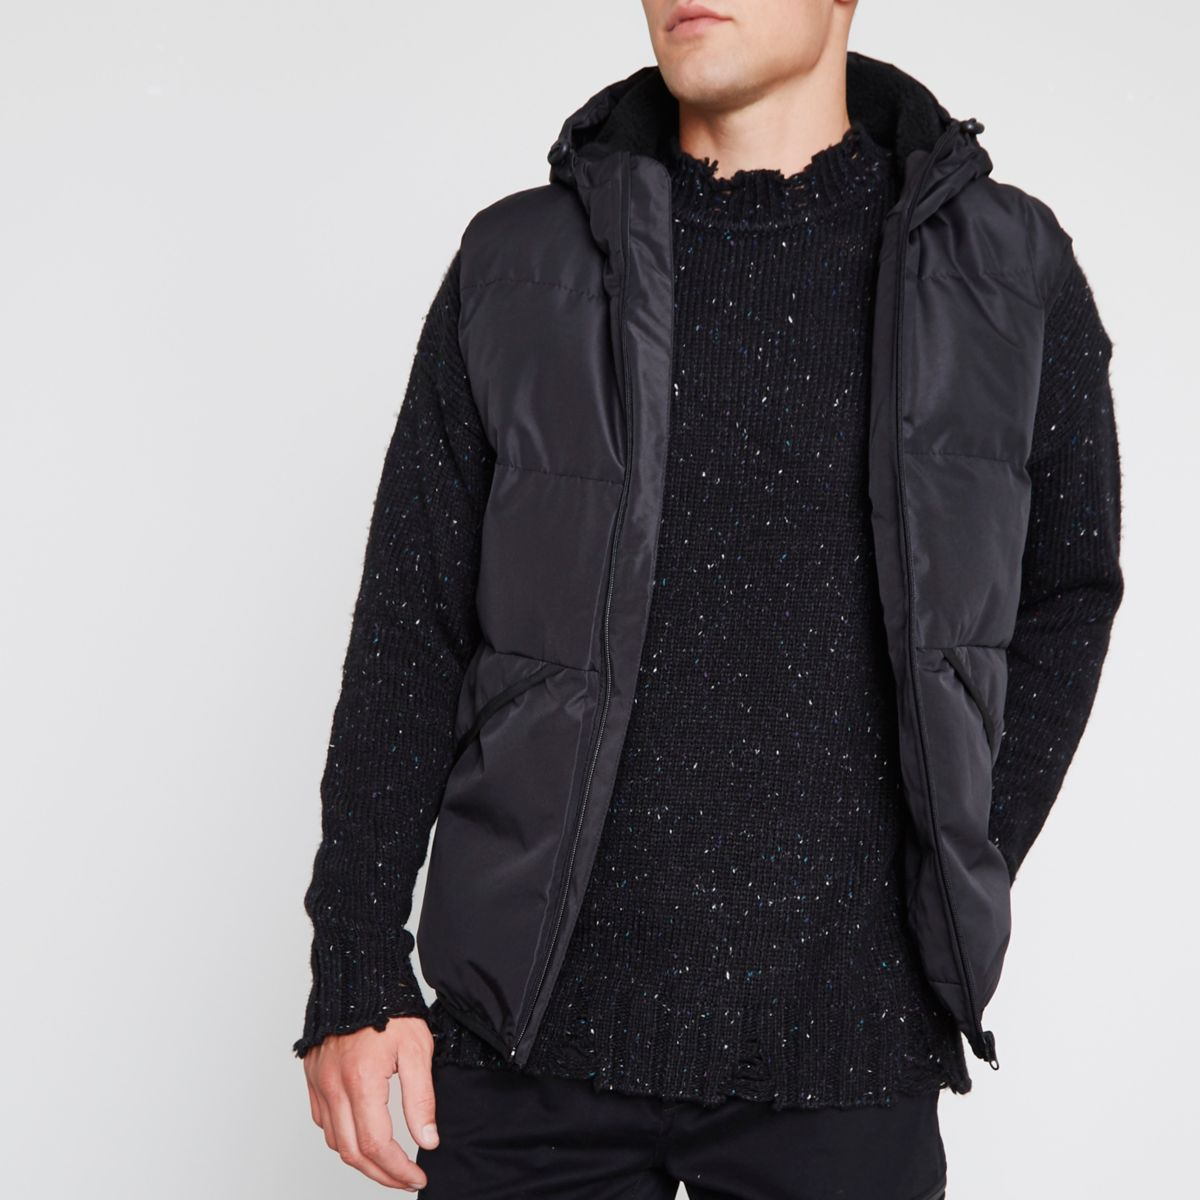 Black hooded puffer vest